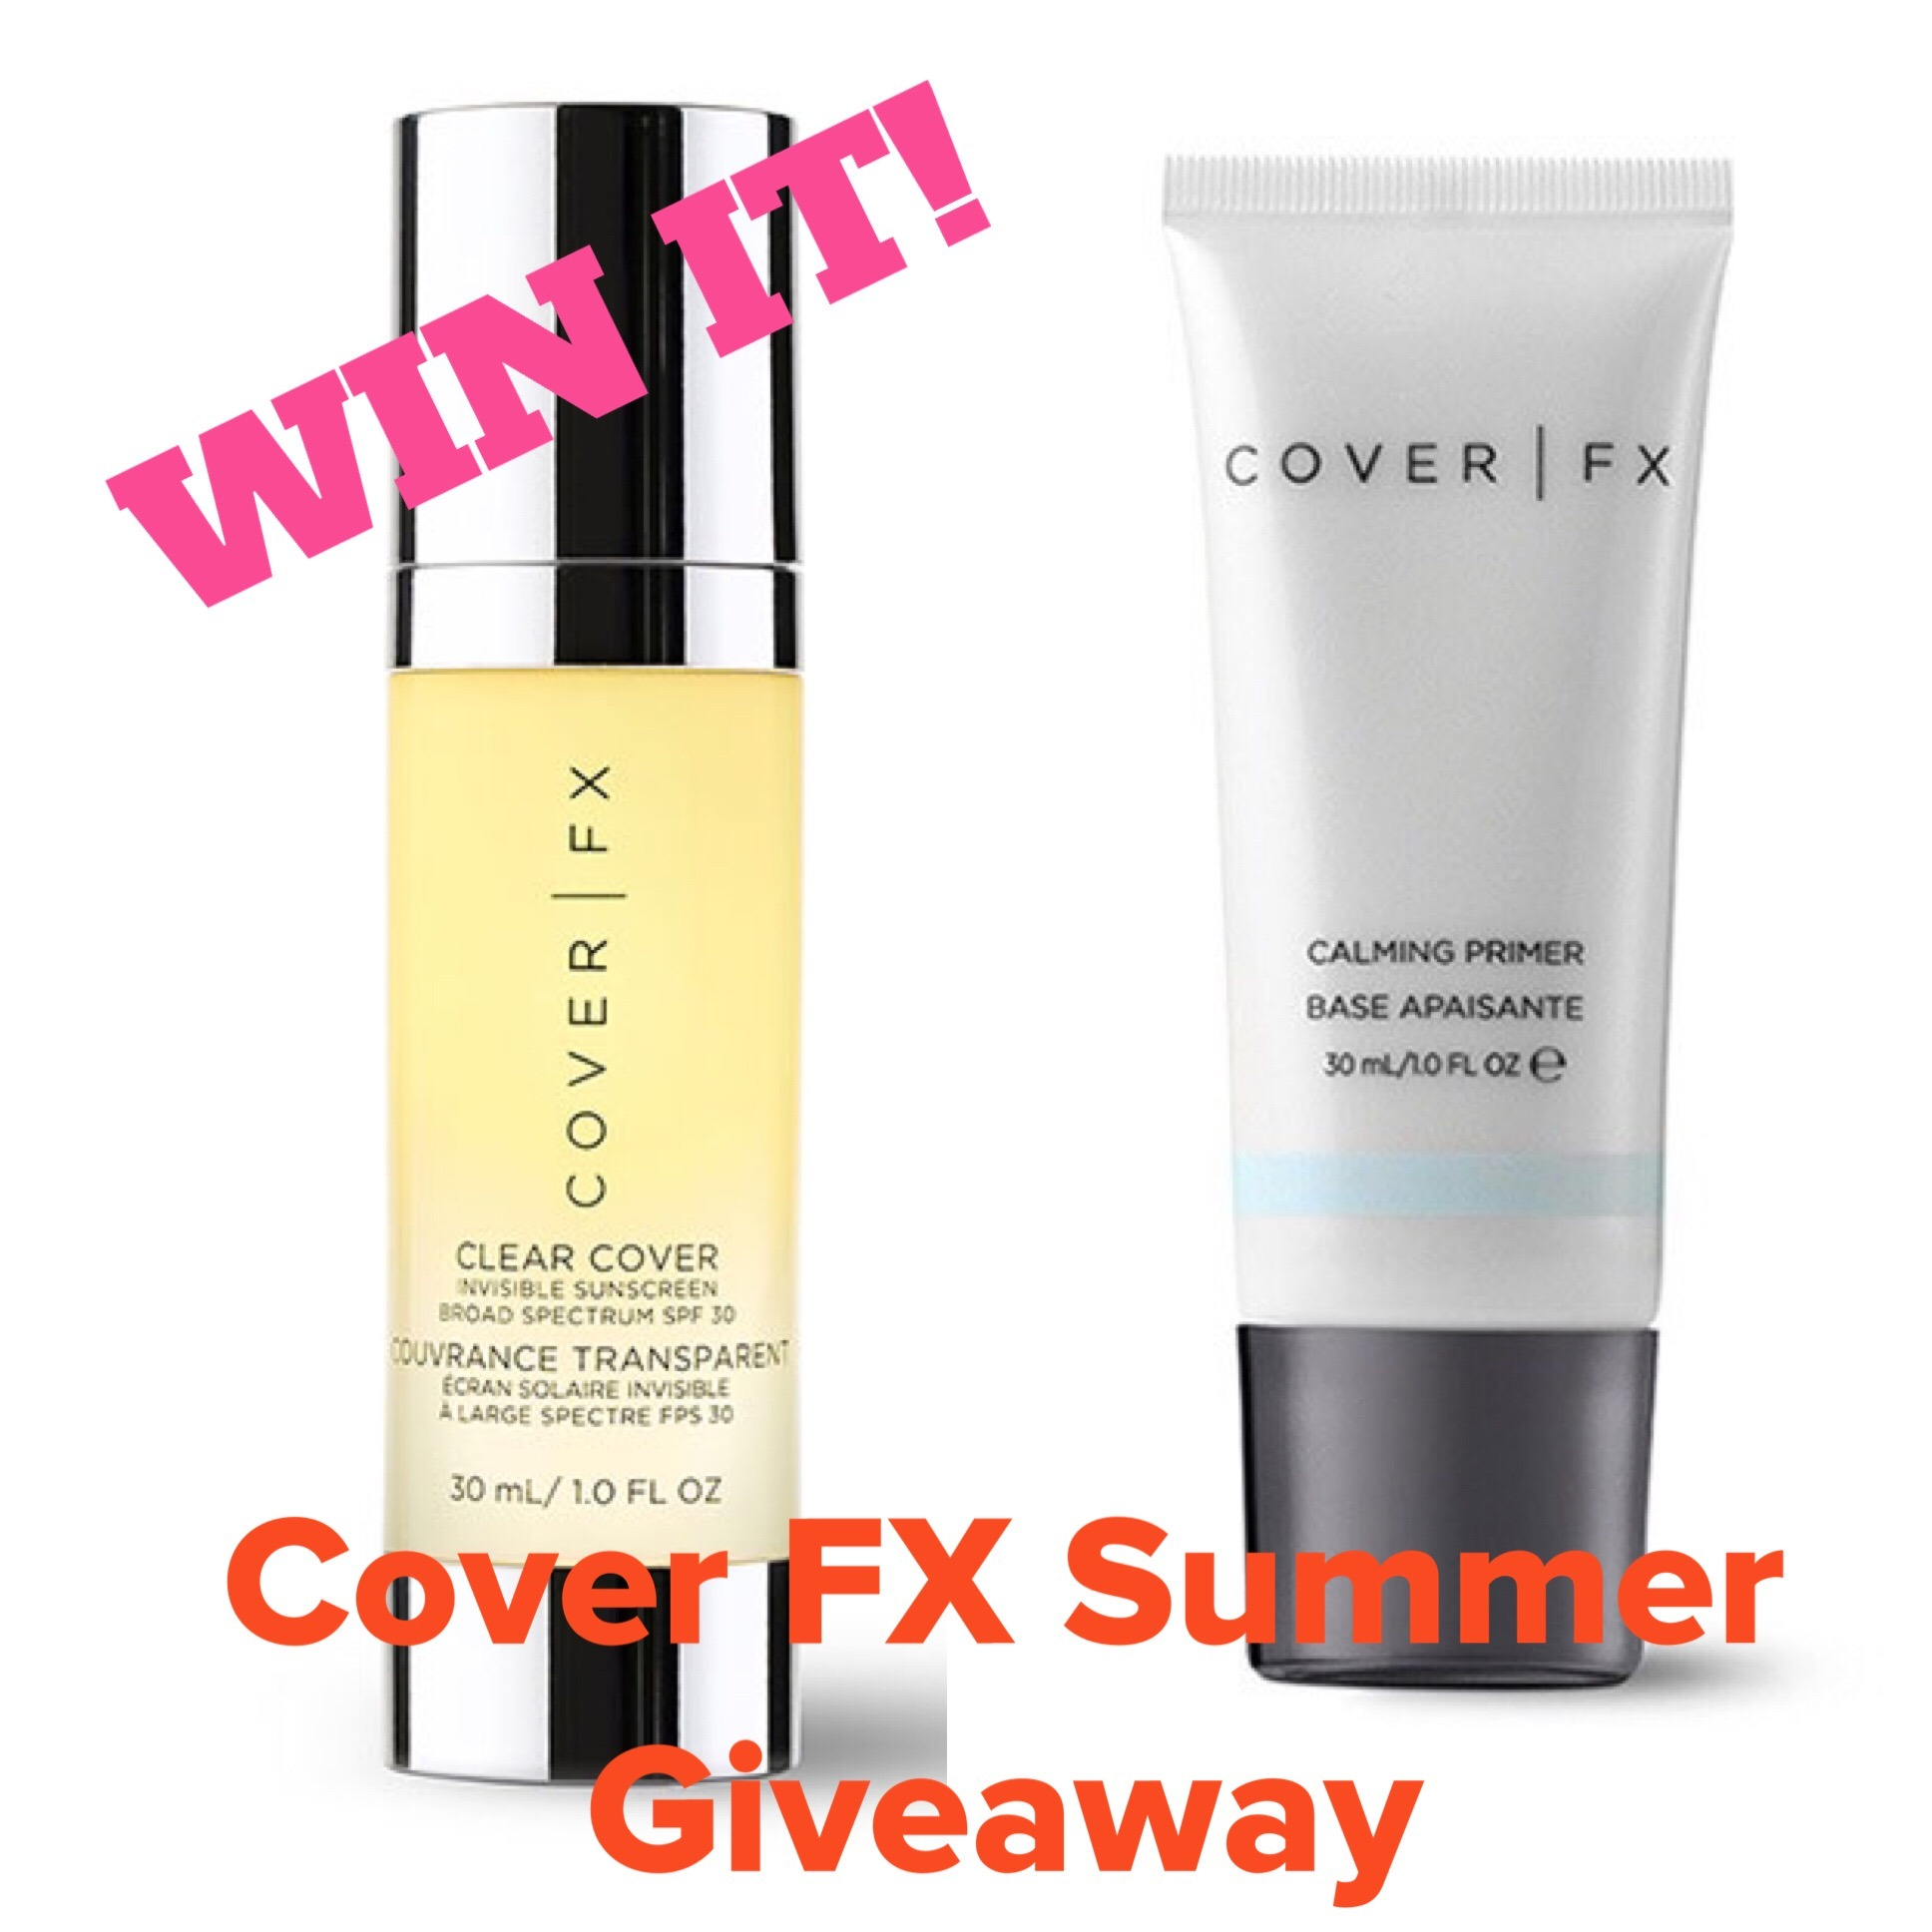 cover fx, makeup, skincare, spf, sunscreen, giveaway